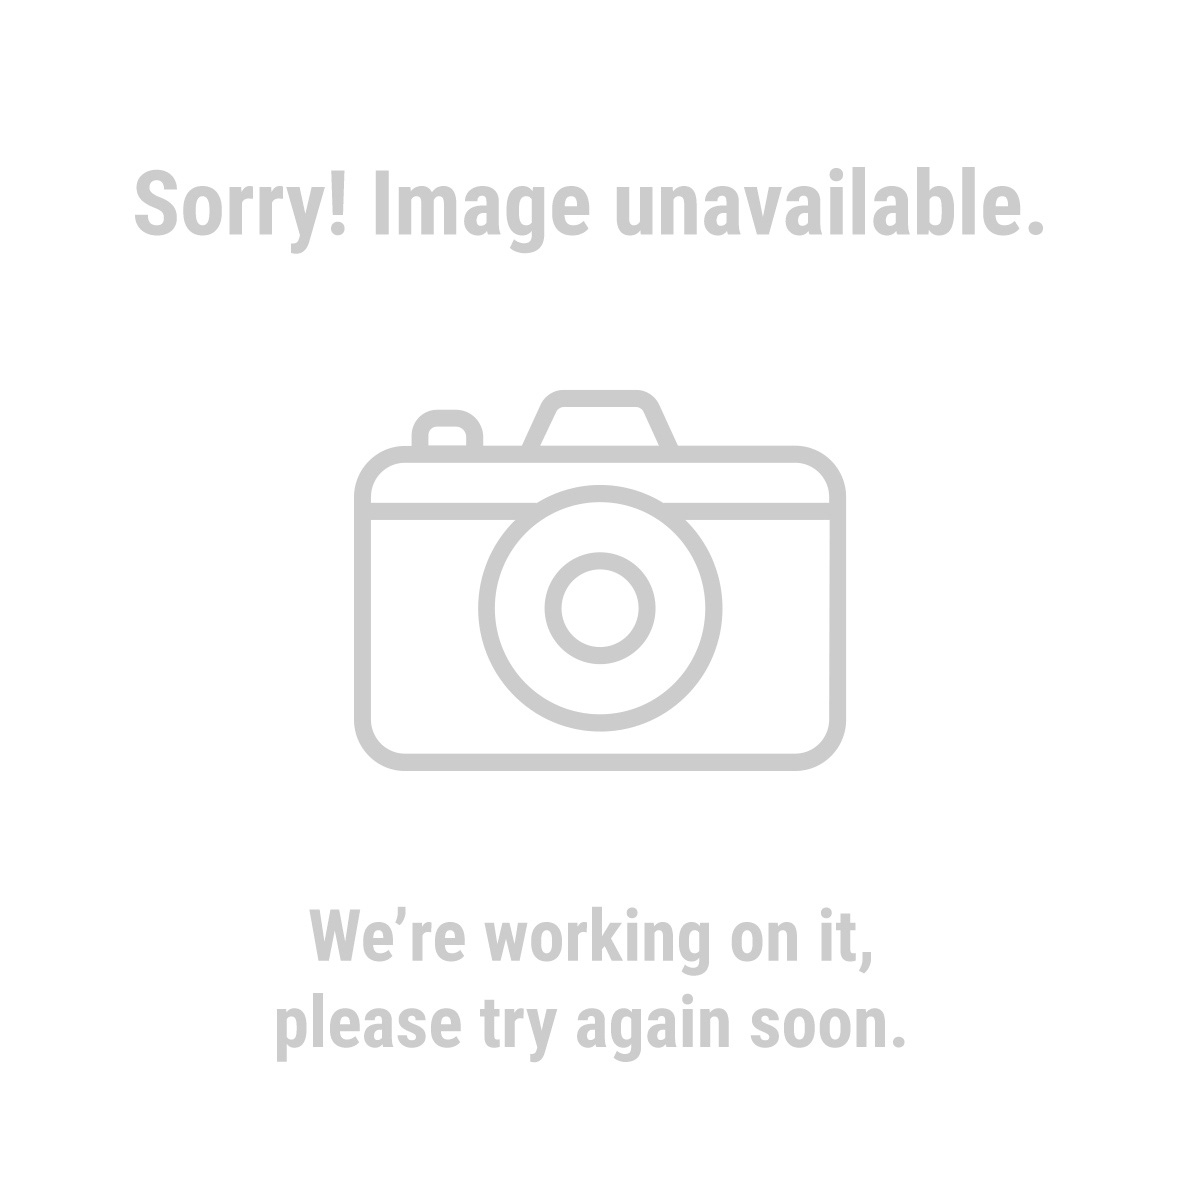 Central-Machinery 38144 16 Speed Heavy Duty Floor Drill Press